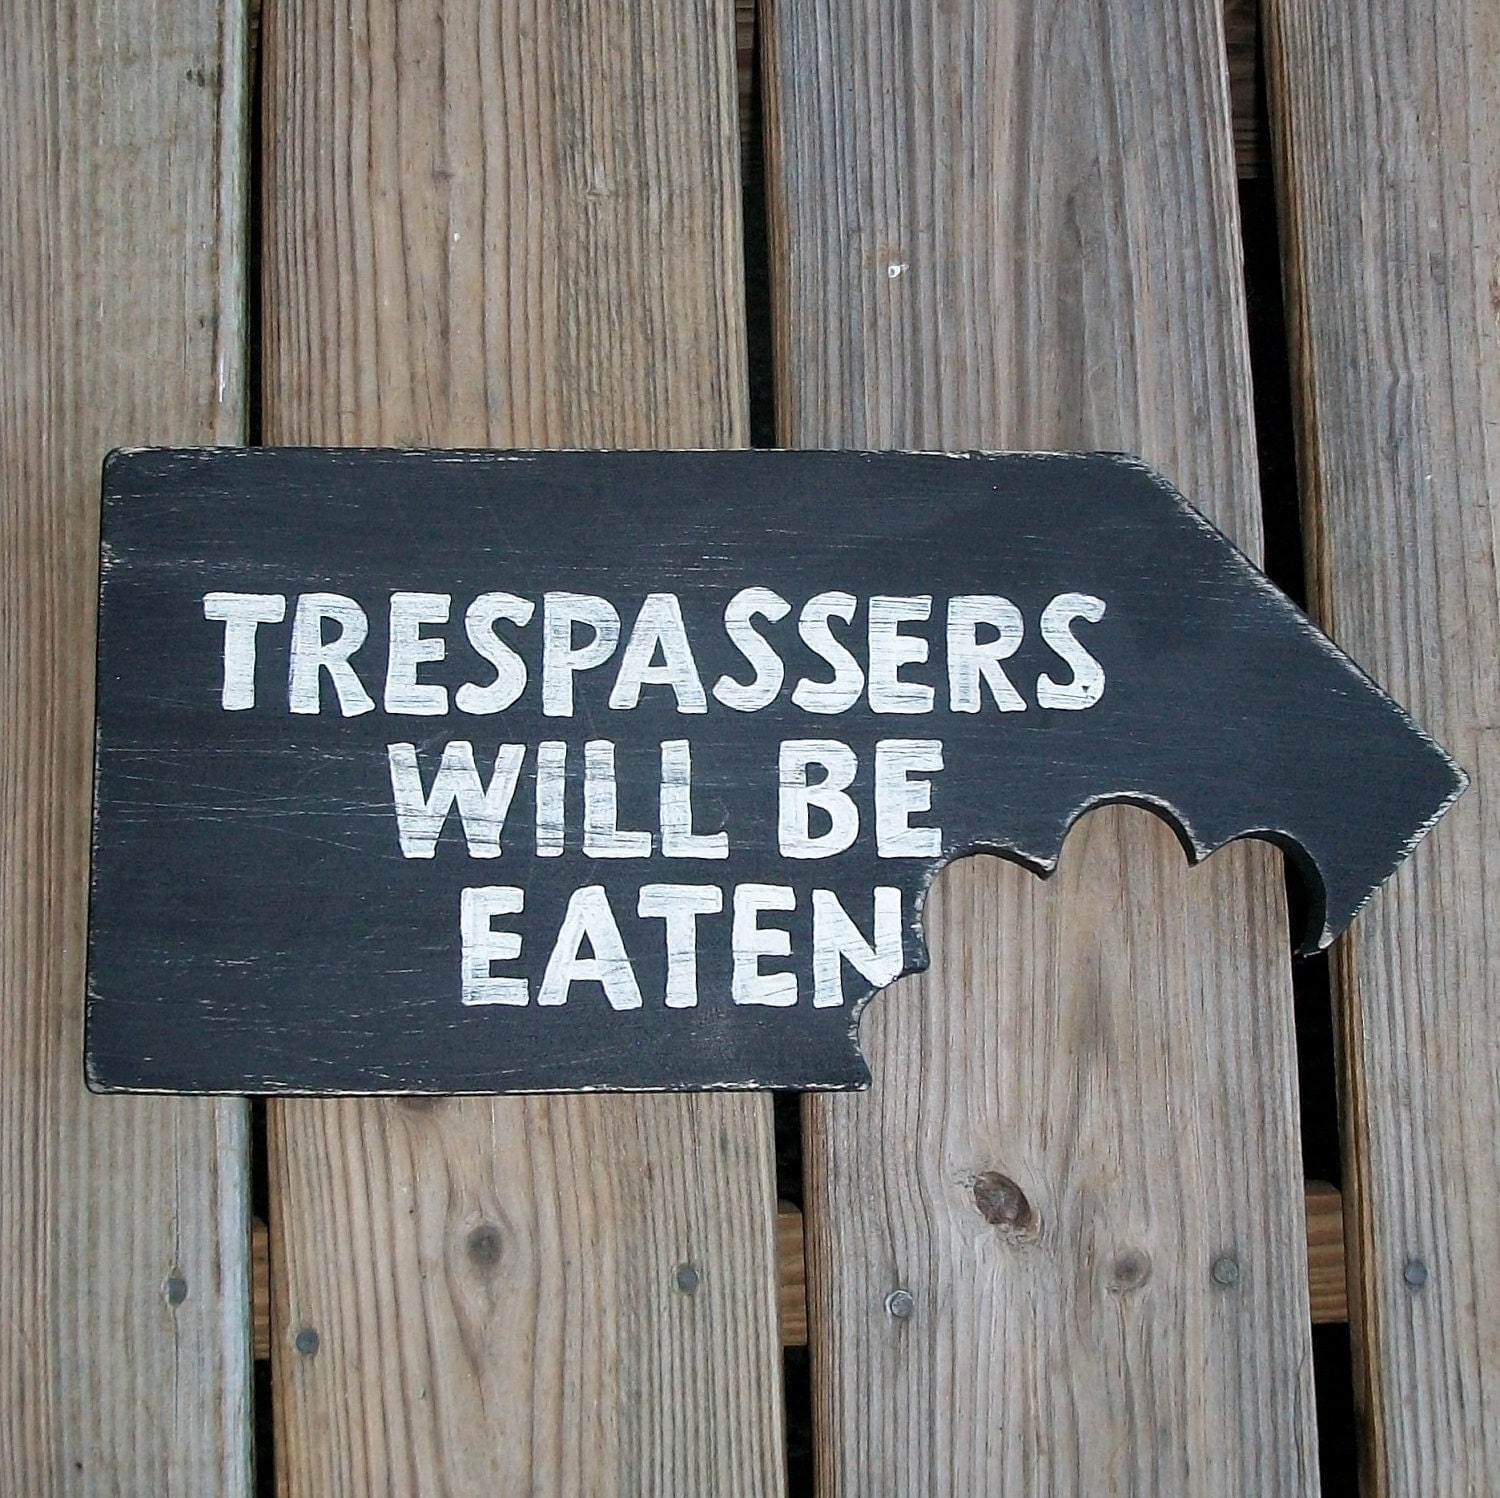 Man Cave Funny Signs : Man cave funny sign trespassers will be eaten no girls